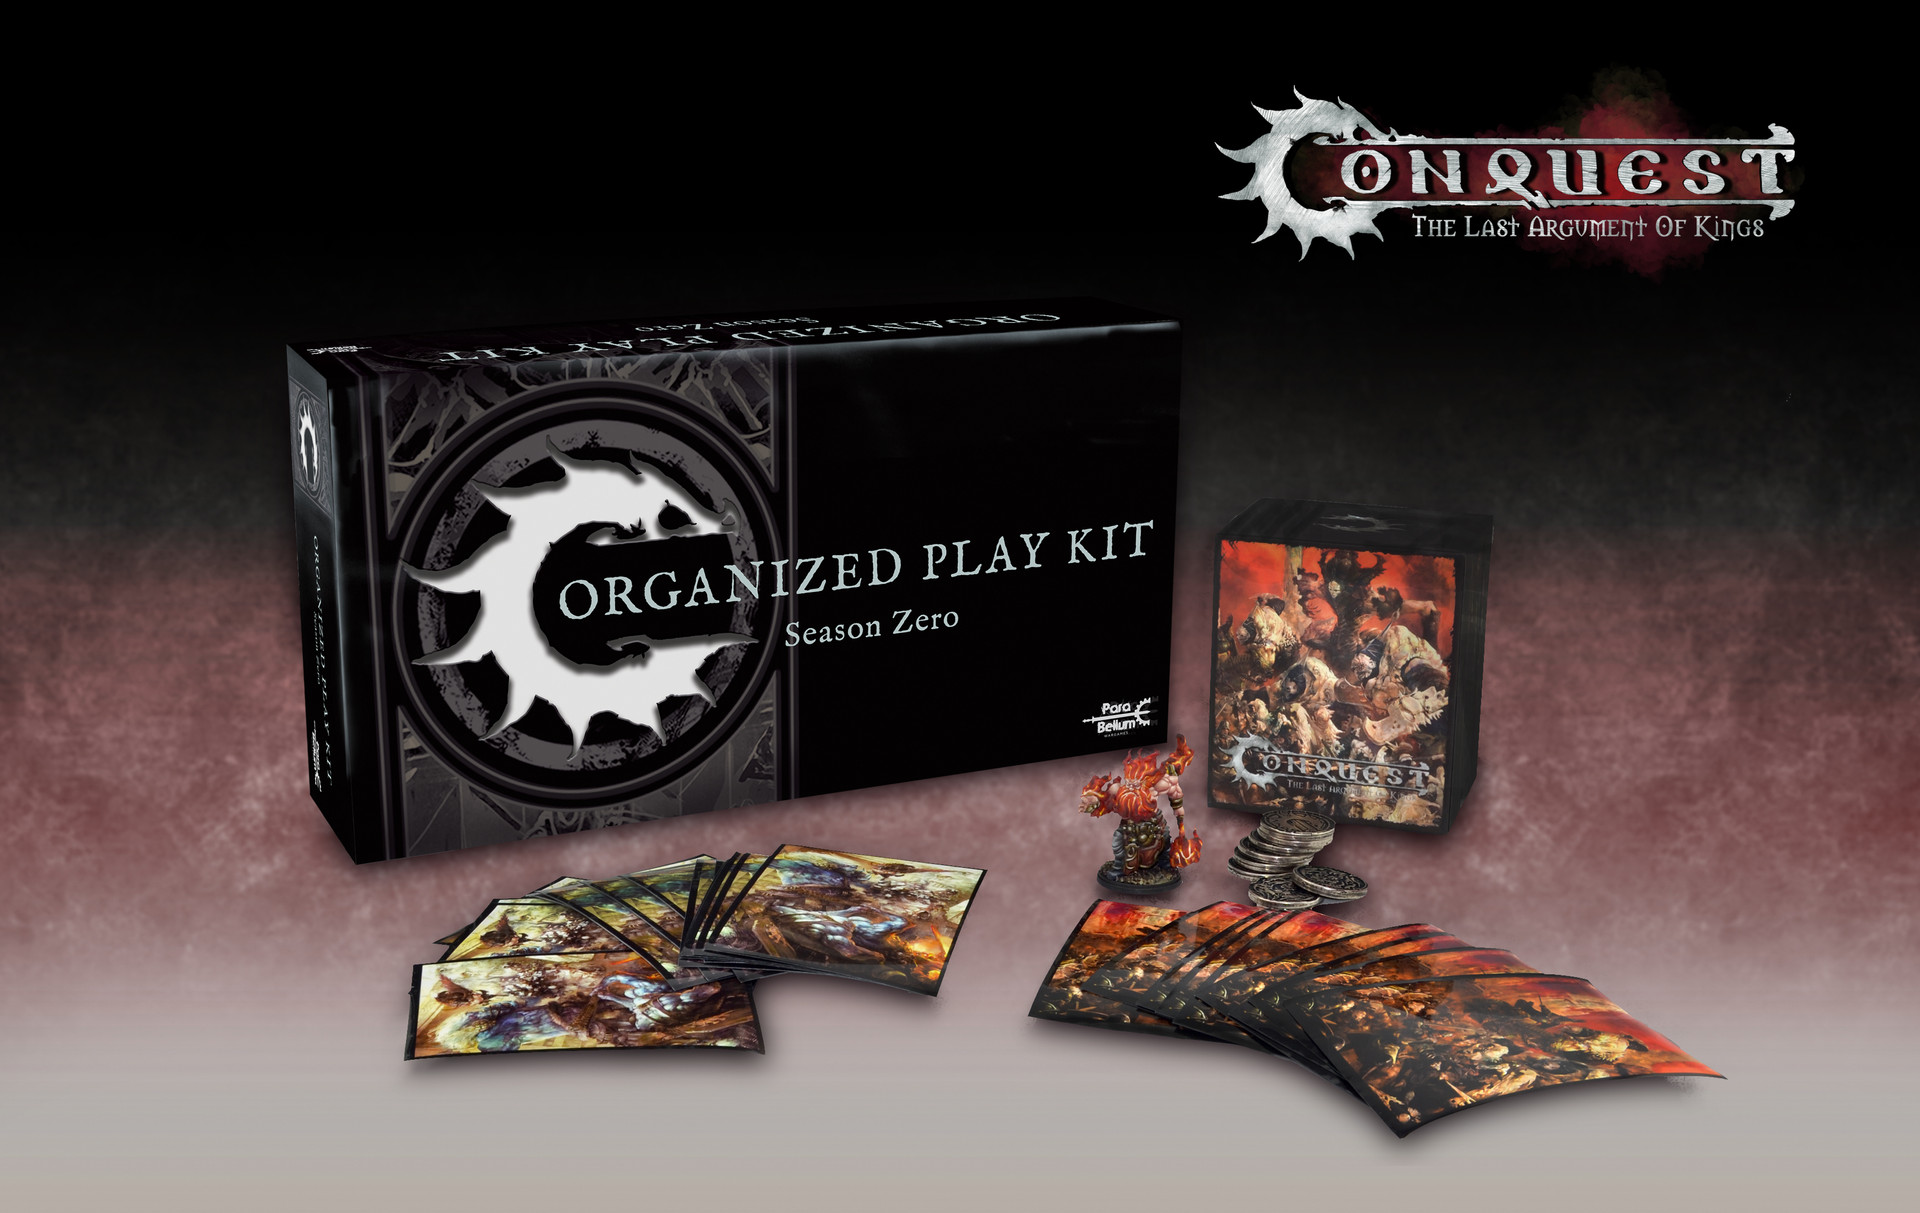 Organized Play Kit: Season Zero